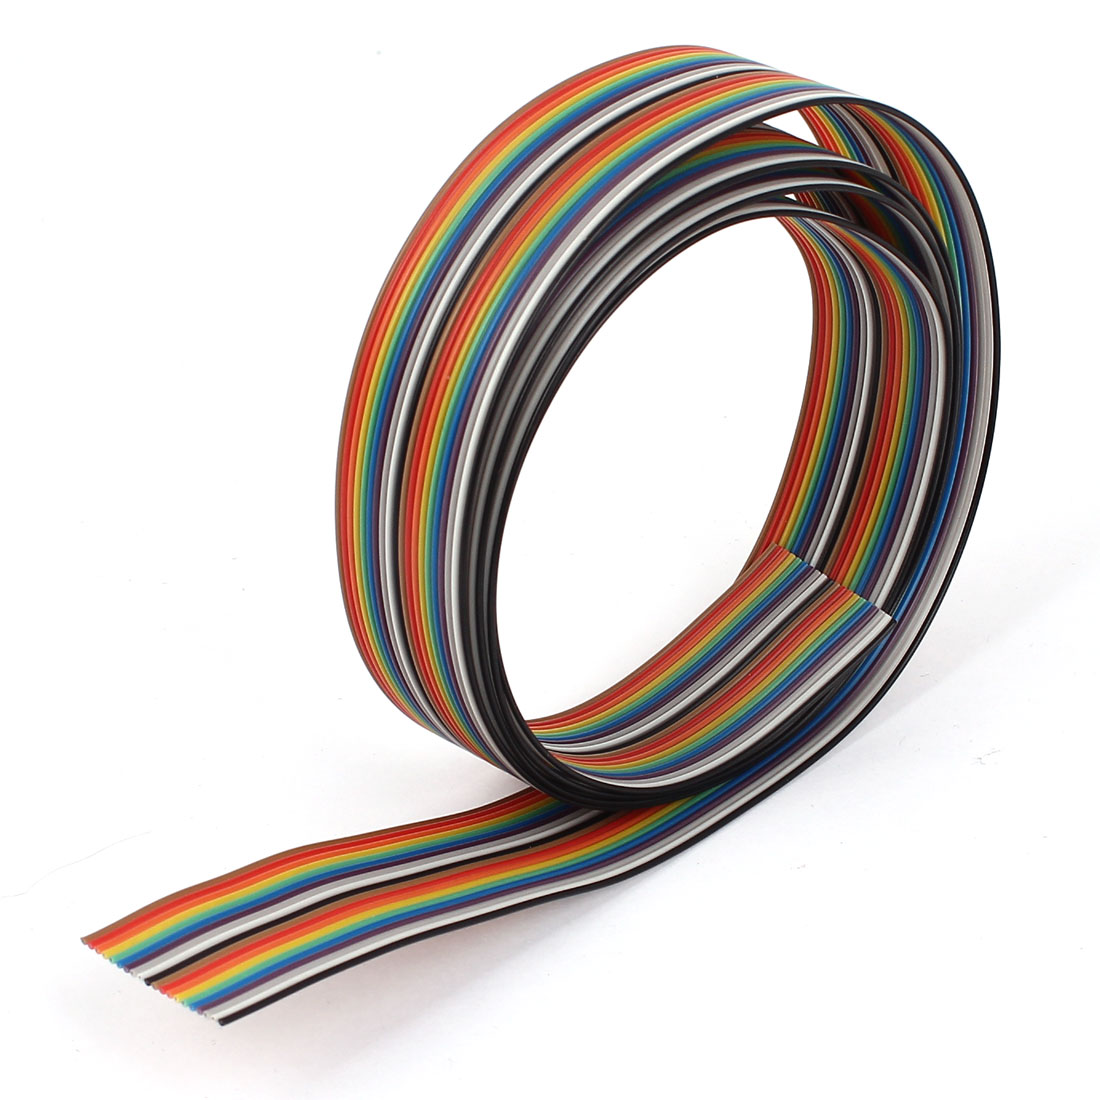 4ft 1.2m Long 20 Pin 1.27mm Pitch Flexible Flat Color Rainbow Ribbon Cable Wire